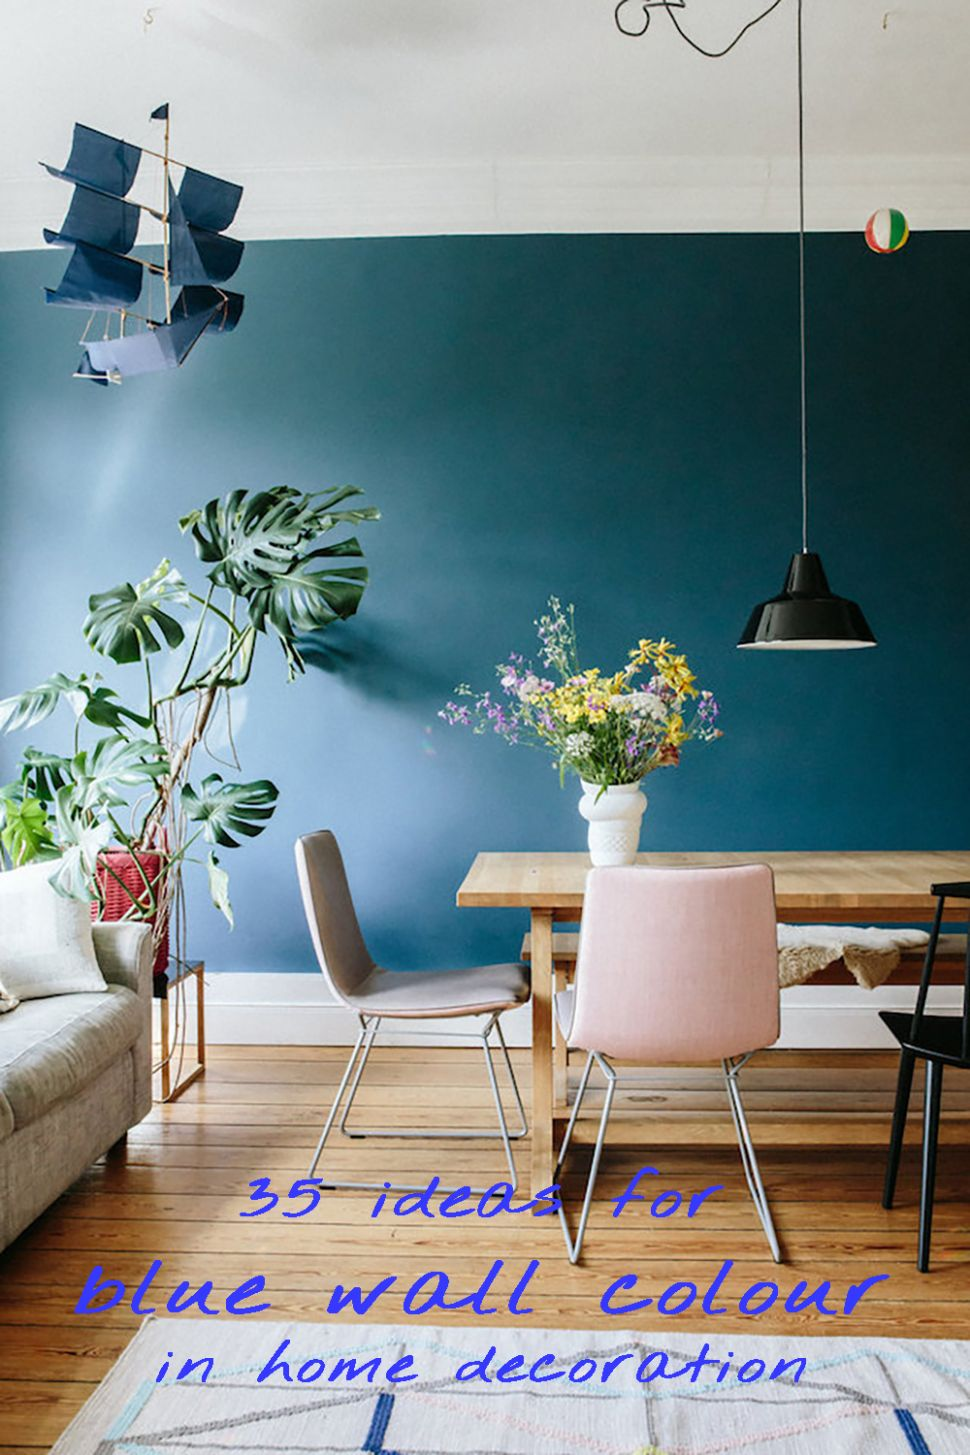 9 ideas for blue wall colour in home decoration - Aliz's Wonderland